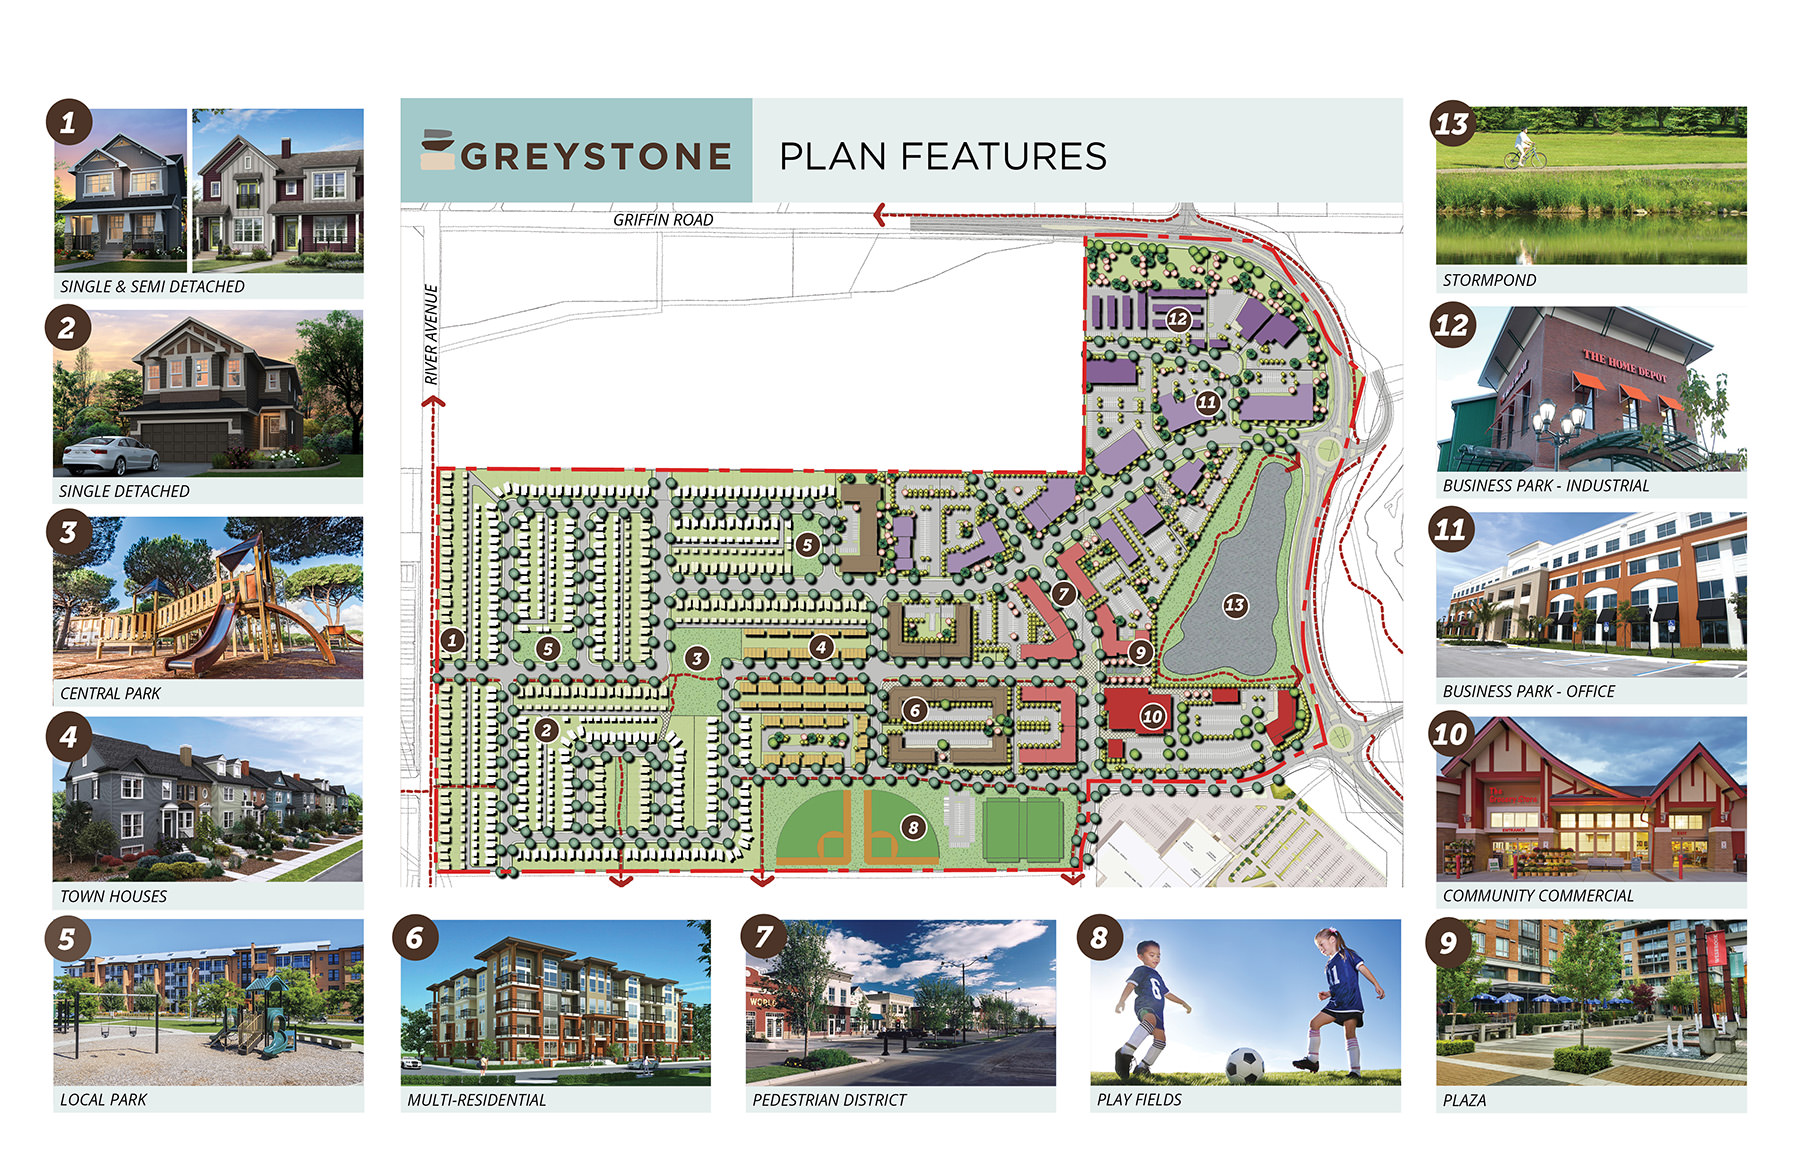 Greystone-Illustrative-Plan